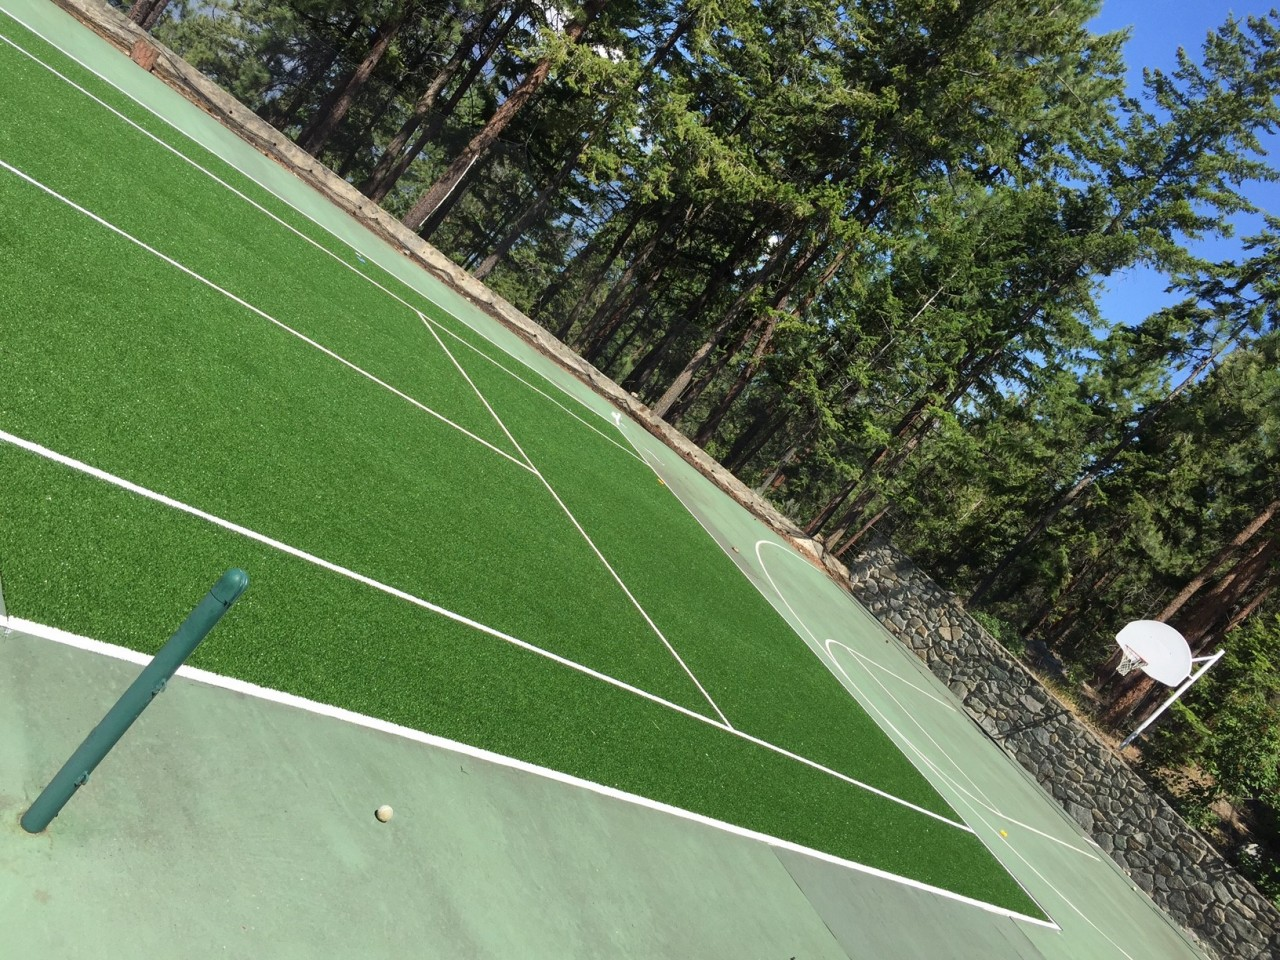 tennis synthetic turf